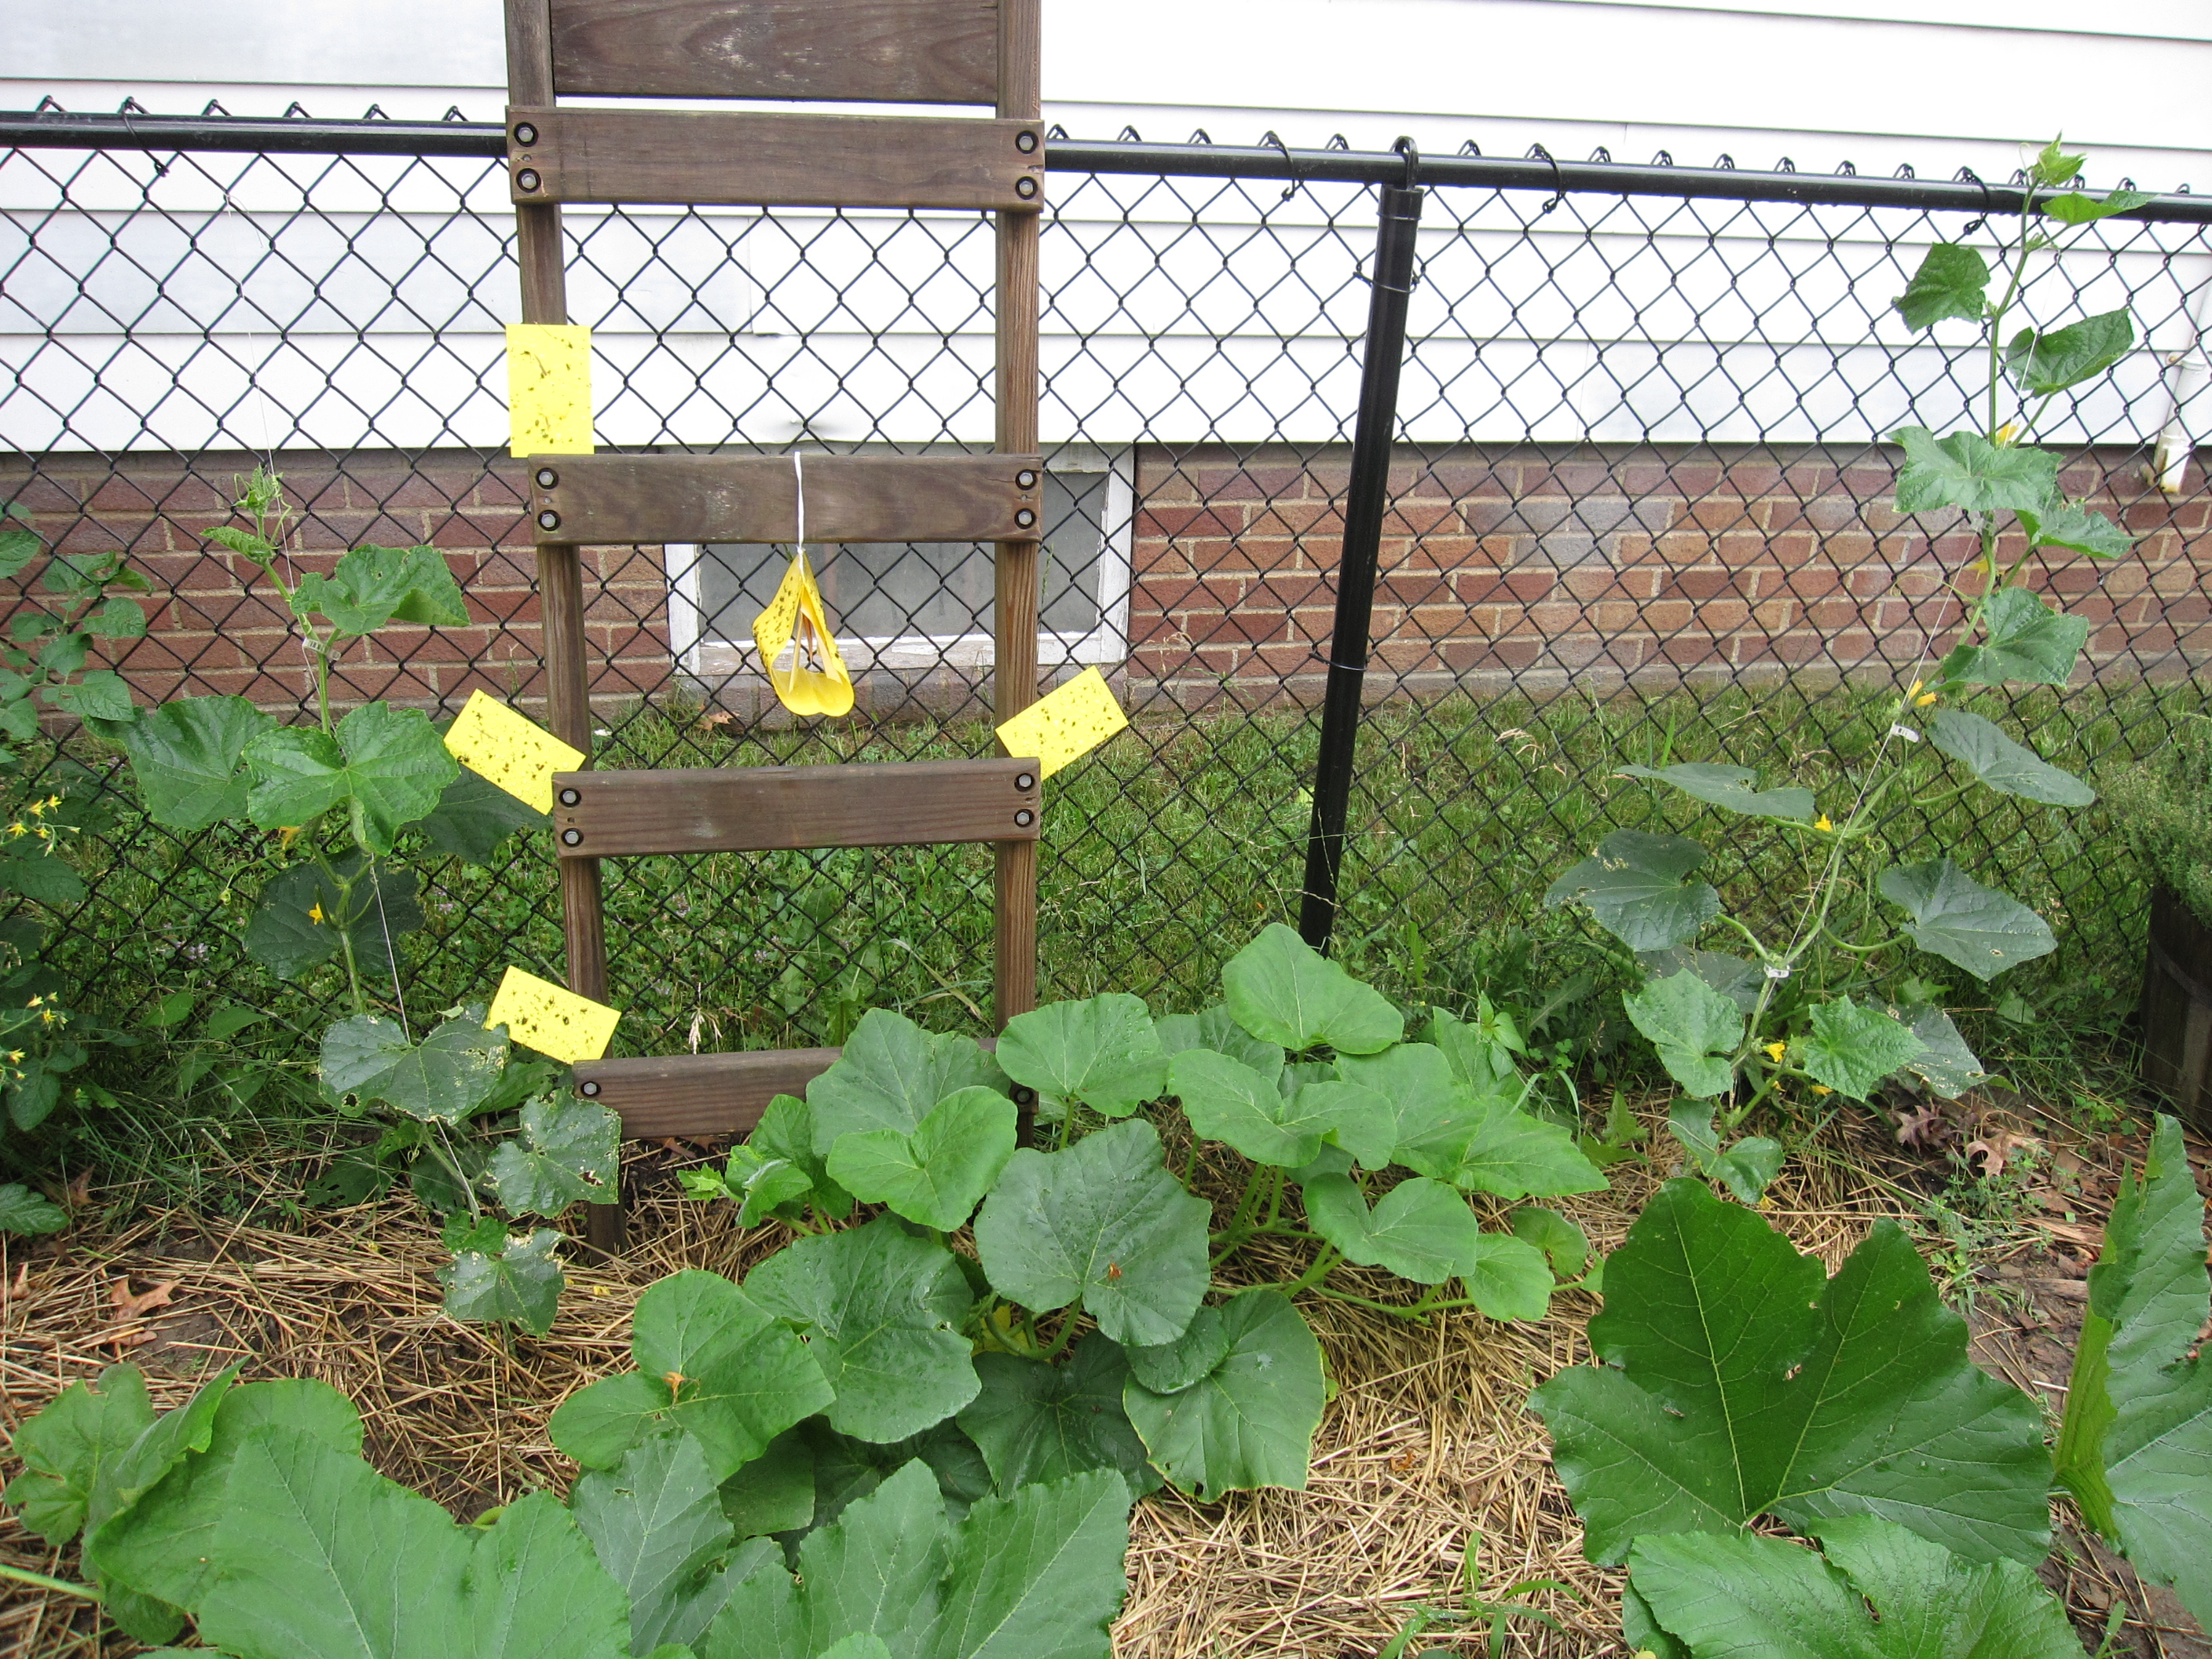 A view of the patch with the yellow sticky cards, trap with lure, and plants.